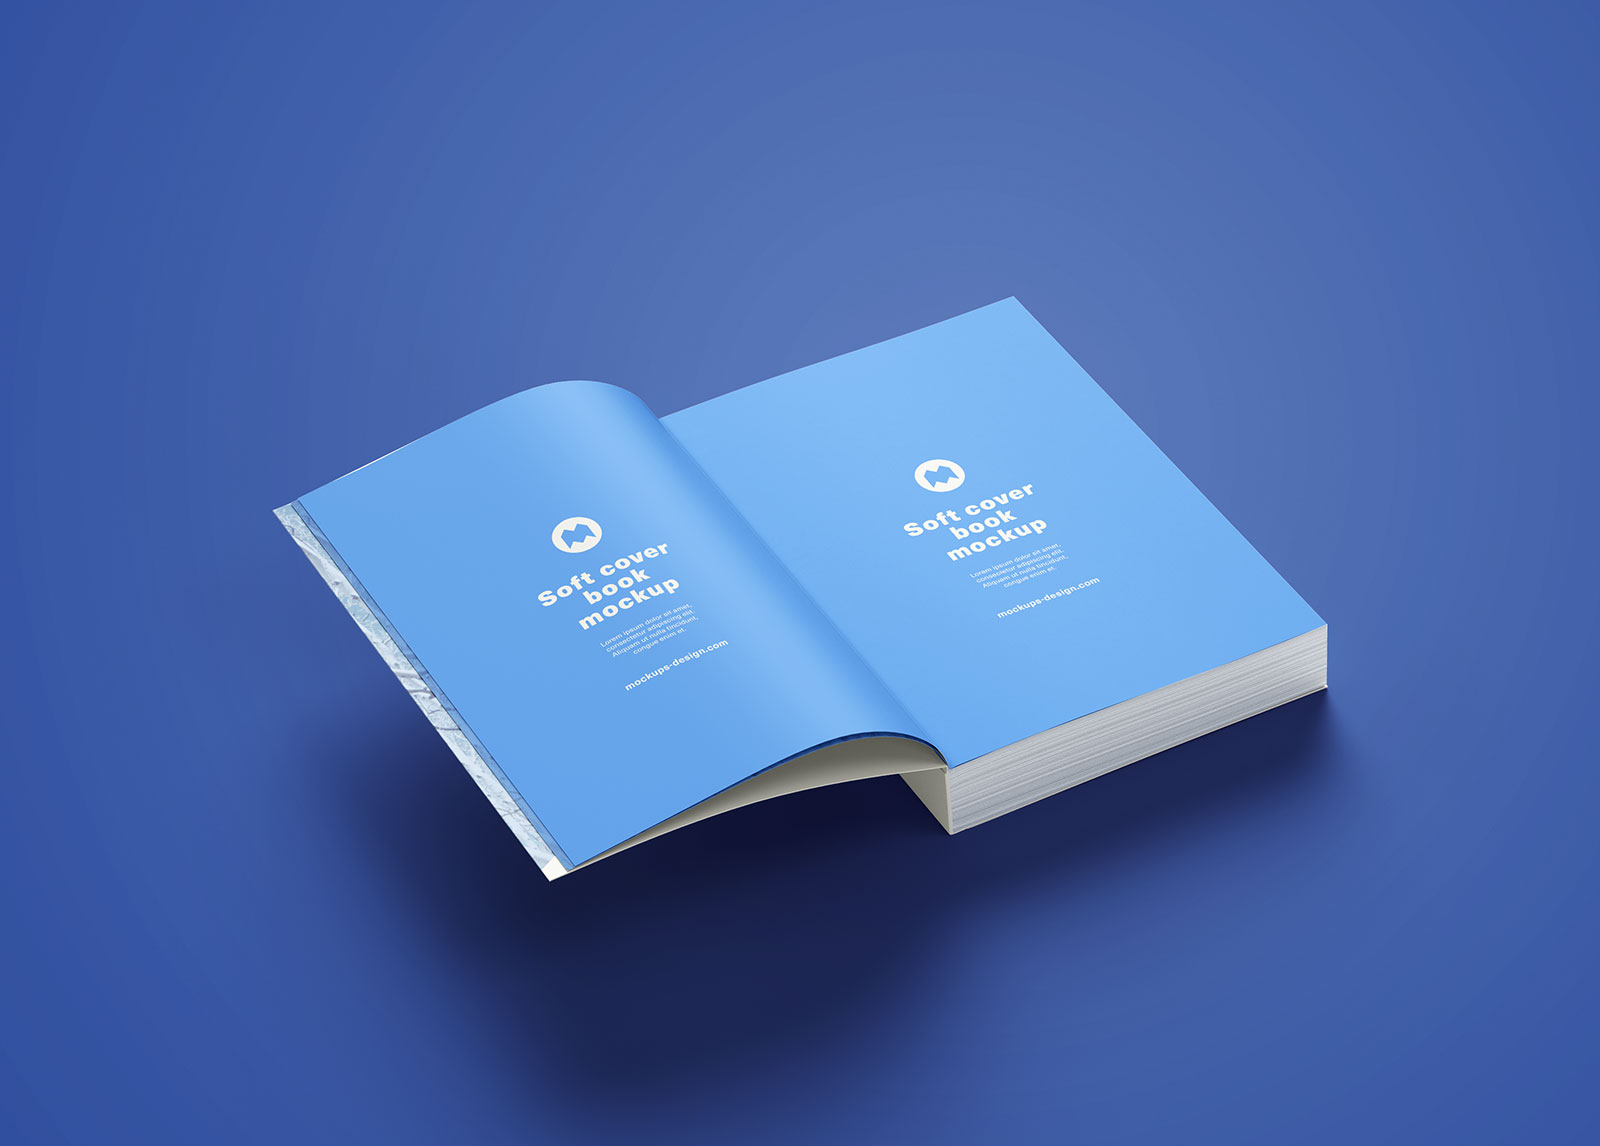 Softcover Book Mockup PSD (6)